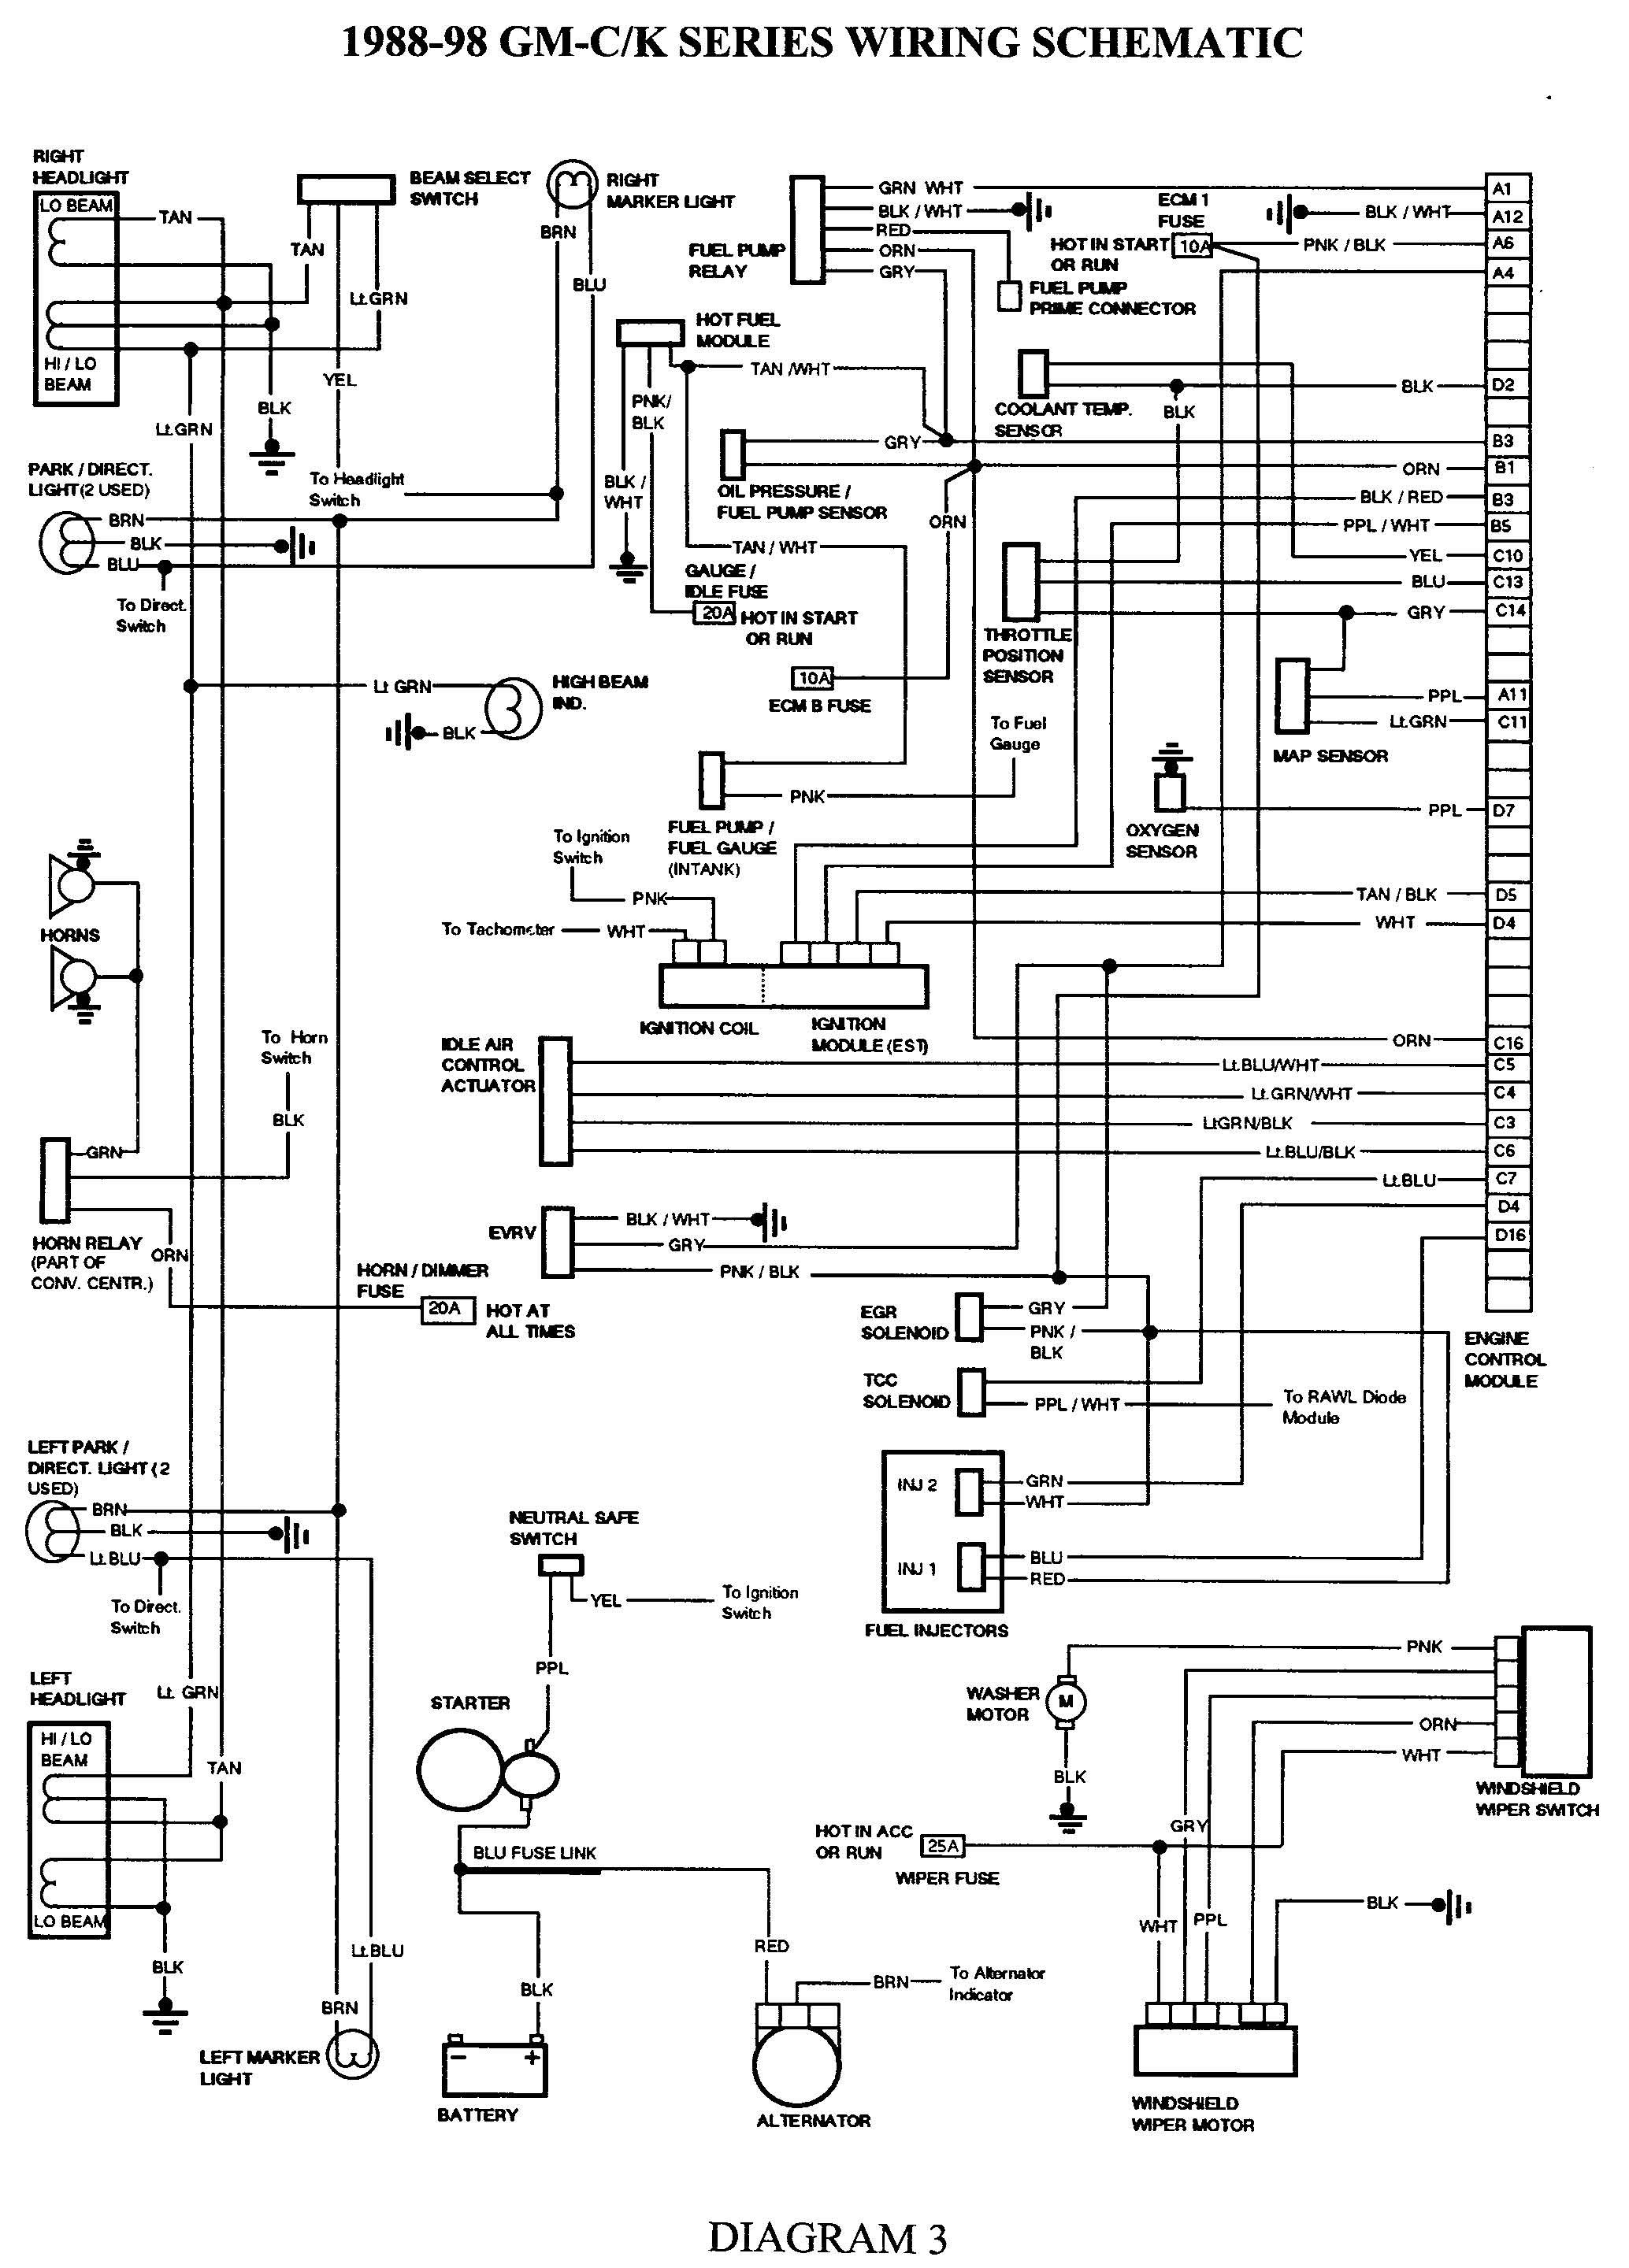 GMC Truck Wiring Diagrams on Gm Wiring Harness Diagram 88 98